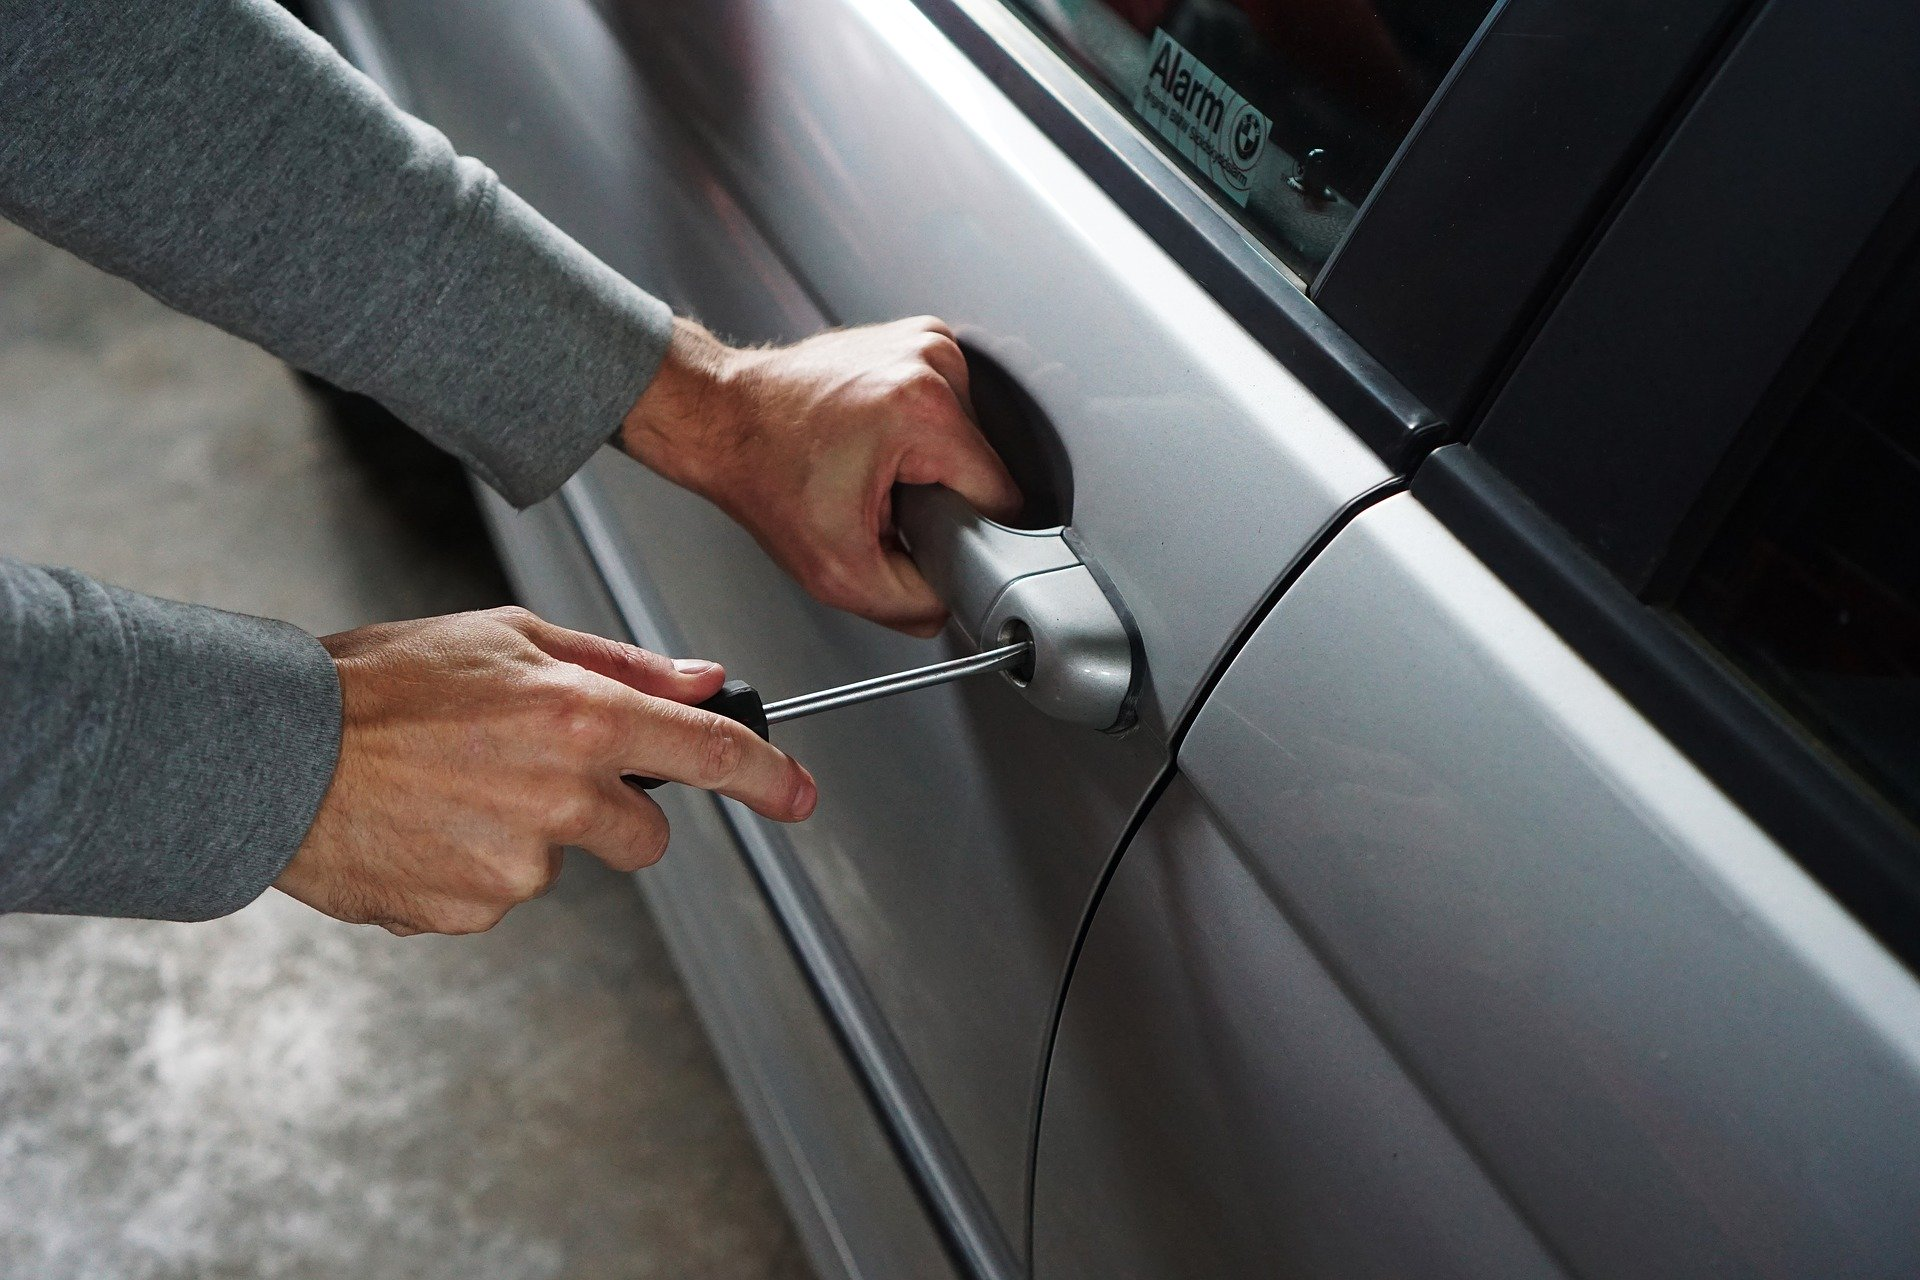 Stolen Vehicles Are Costing Fleets £16,000 A Year